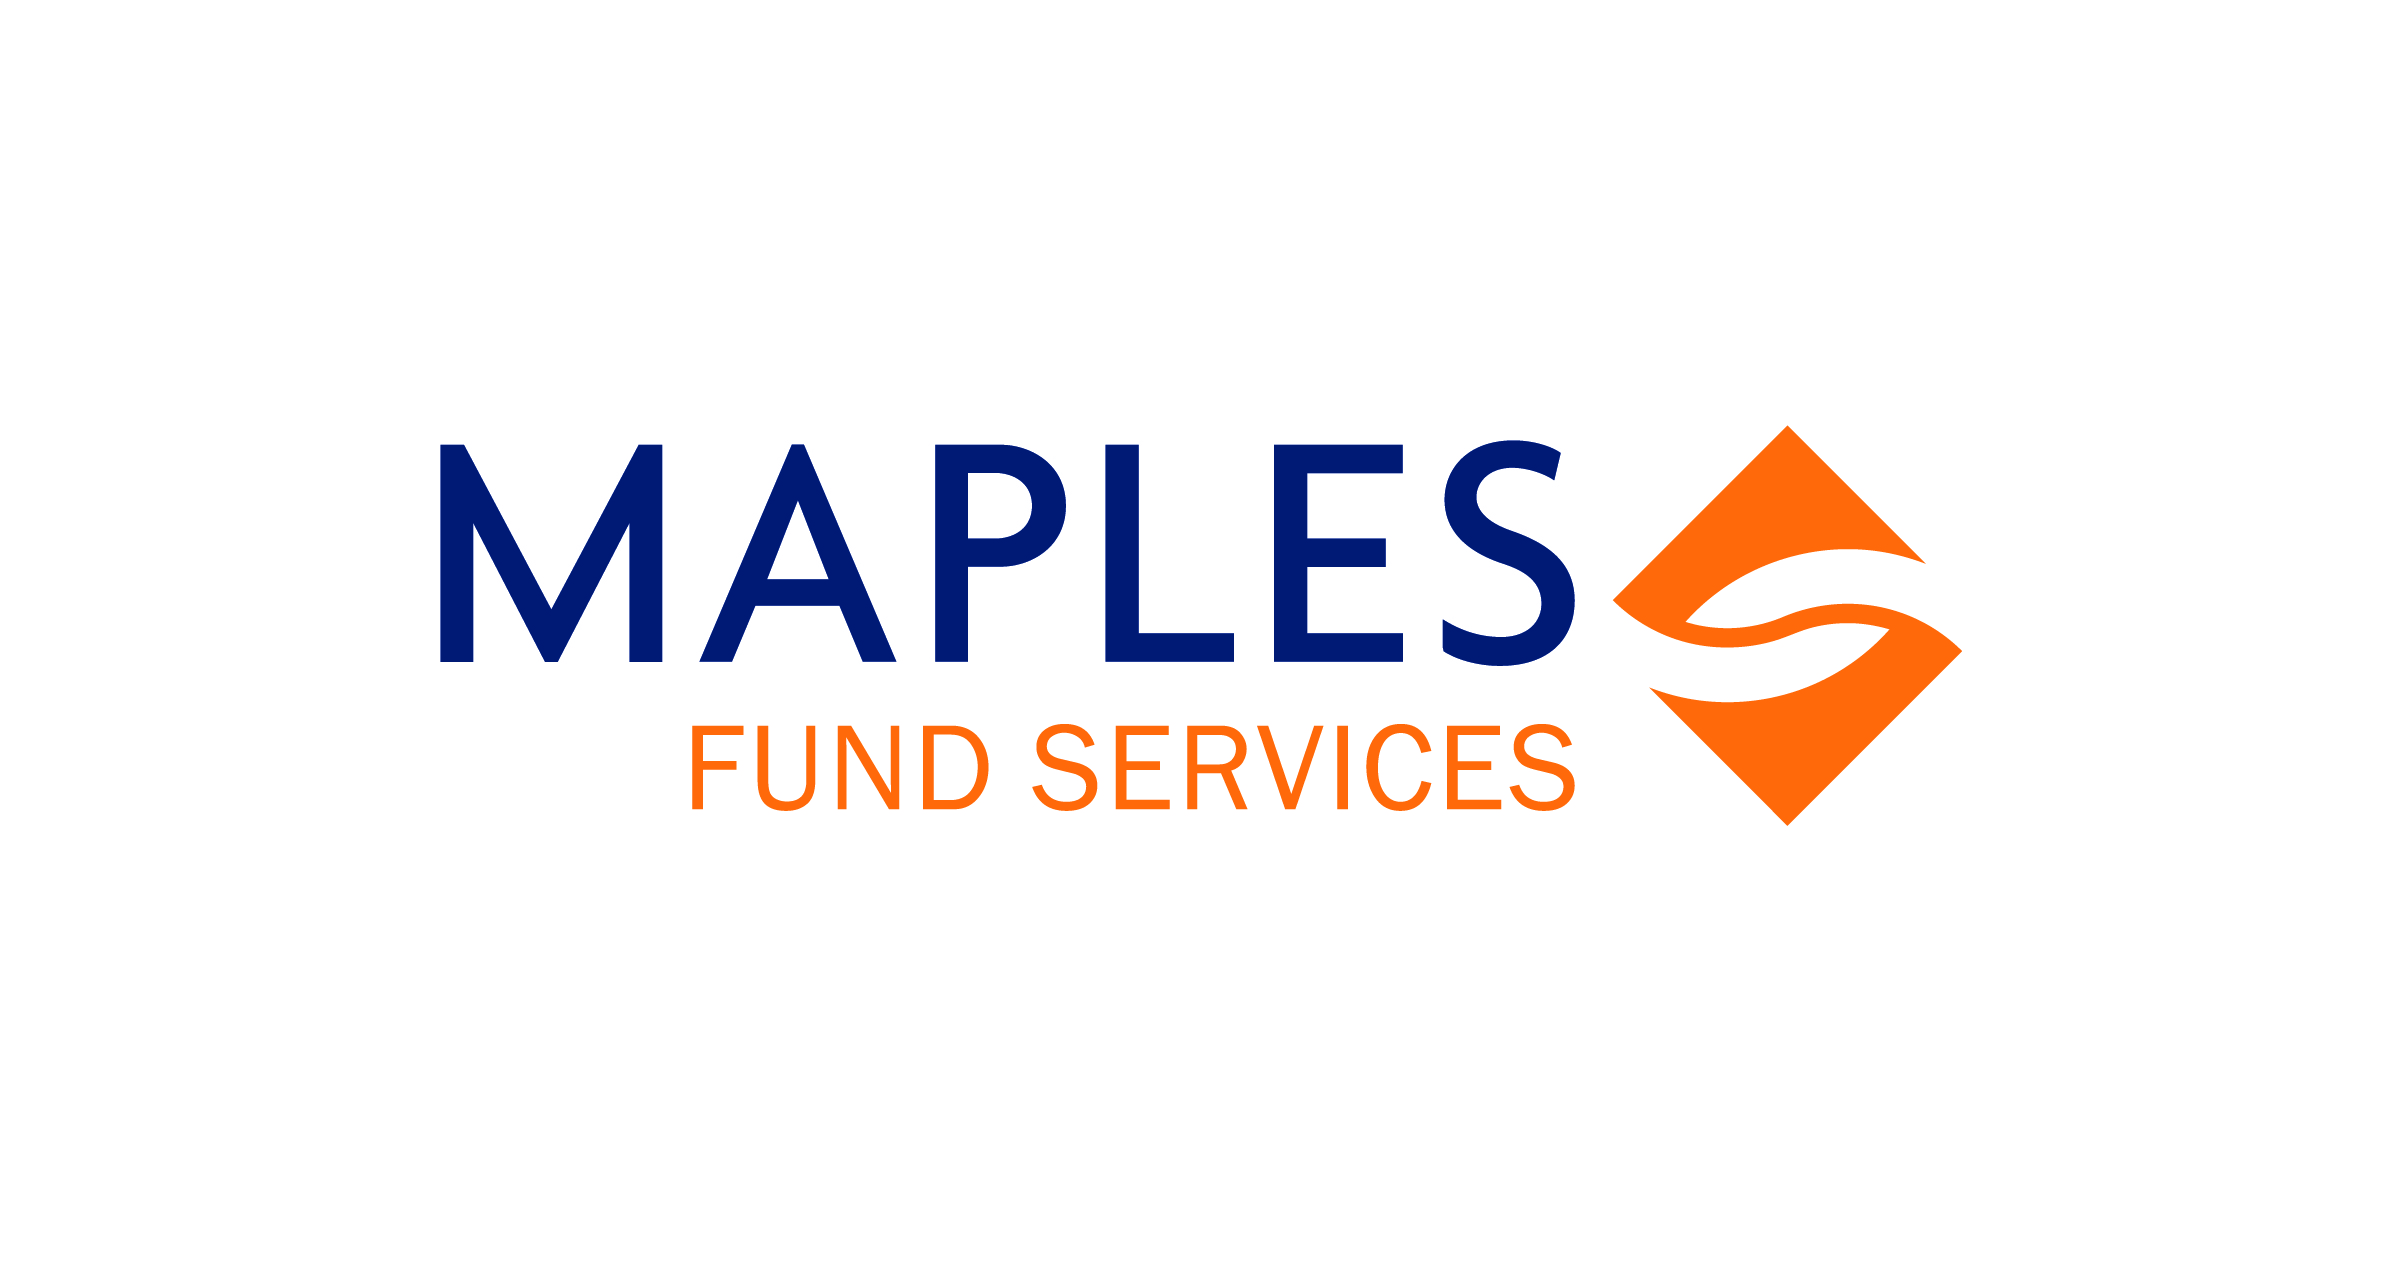 maplesfundservices_pos_cmyk